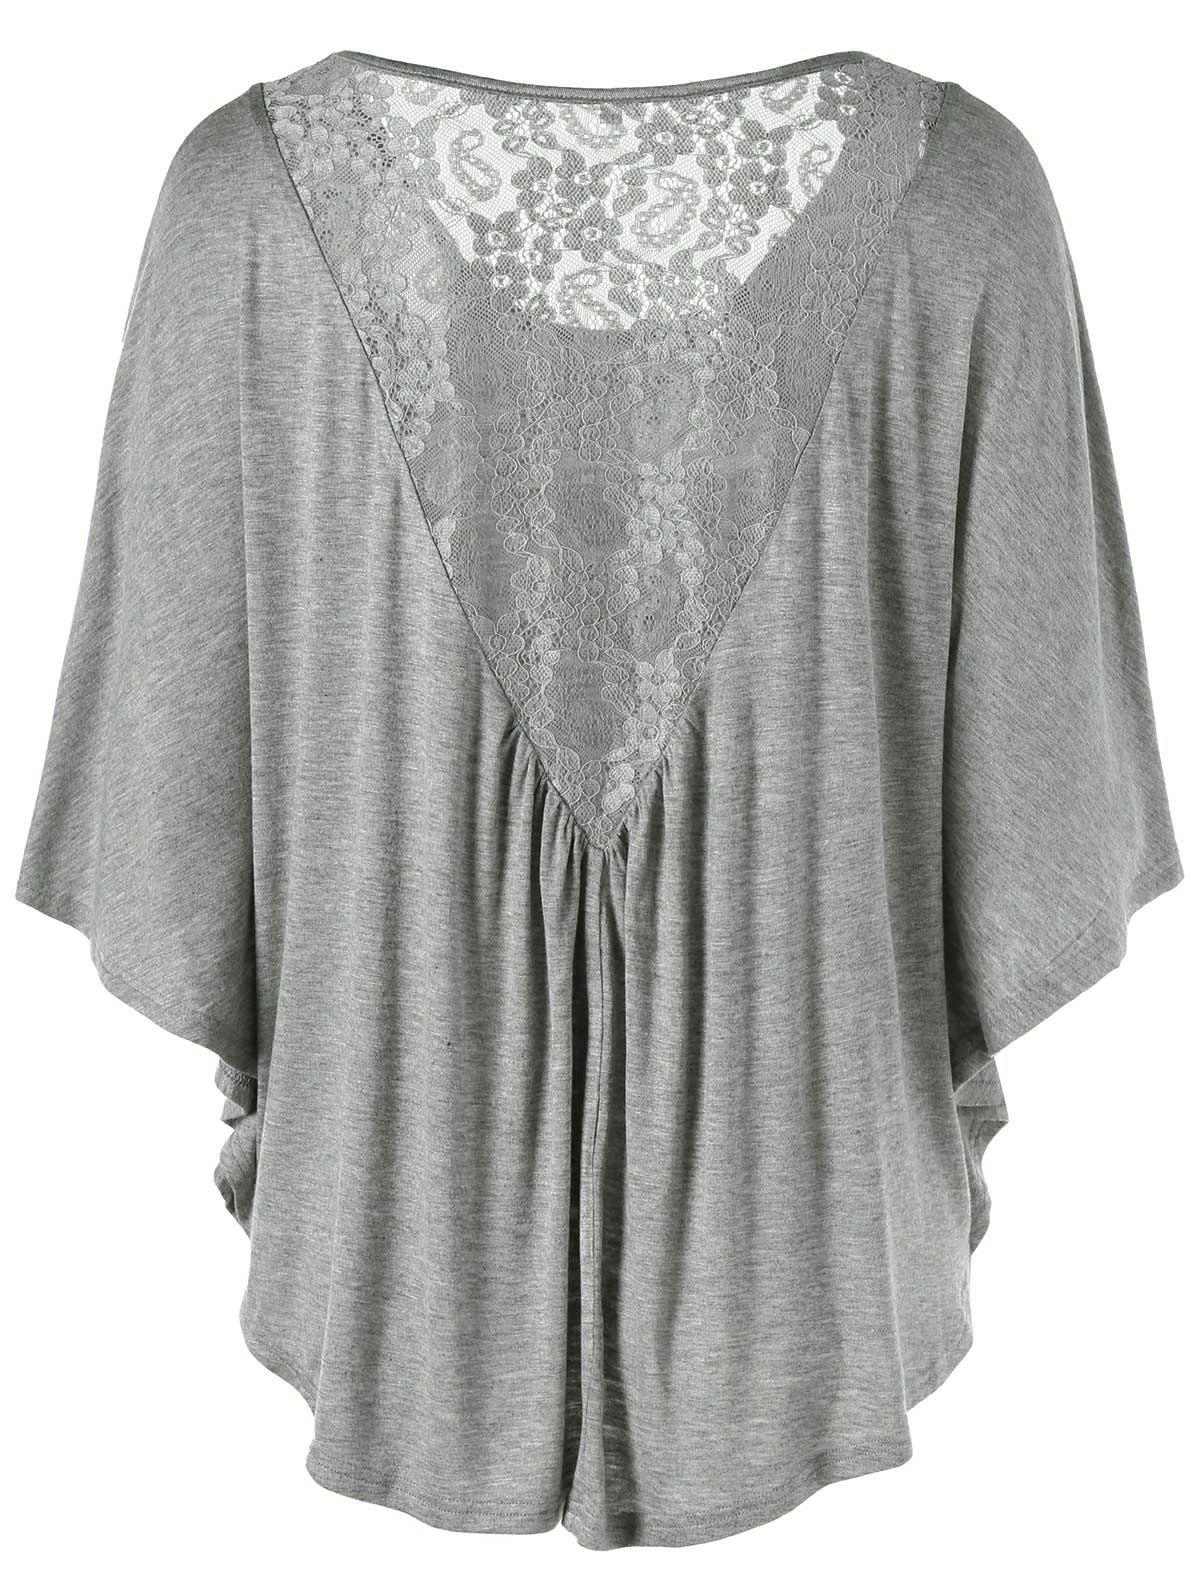 Plus Size Butterfly Sleeve Lace Insert T-Shirt butterfly sleeve rhinestone embellished plus size t shirt